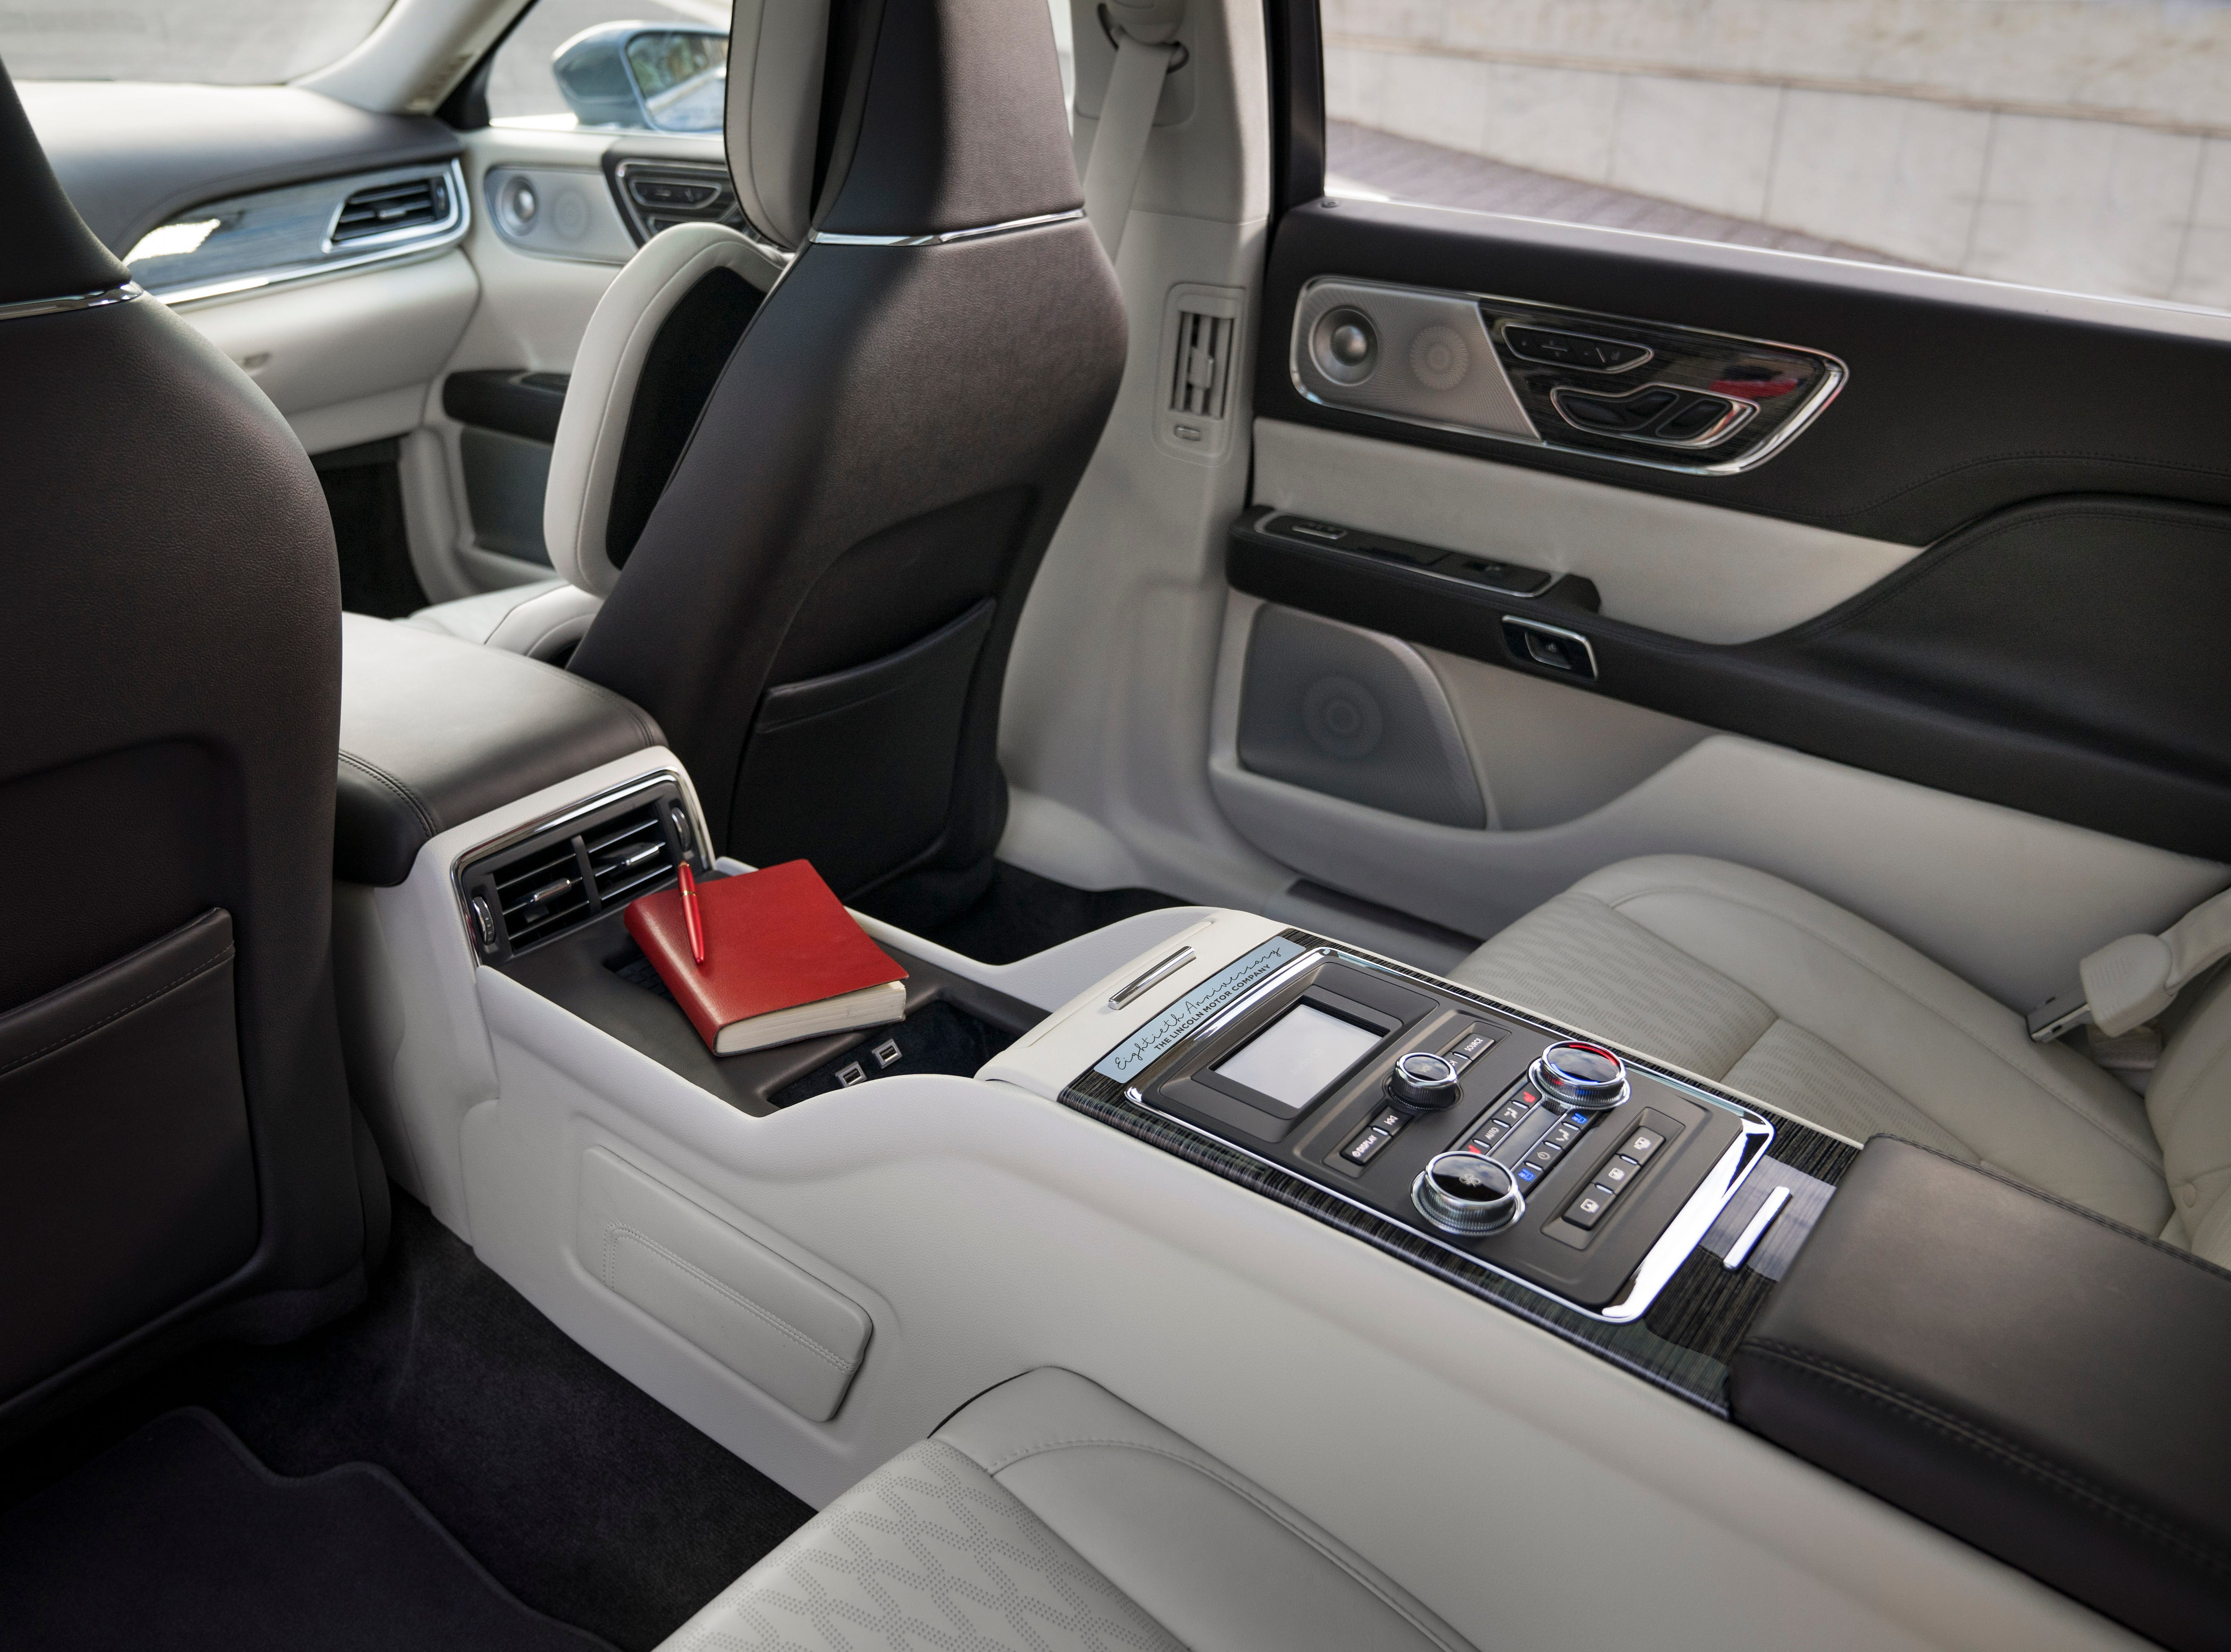 Inside, the Continental's center console will have controls, tray tables, wireless charging and other perks.